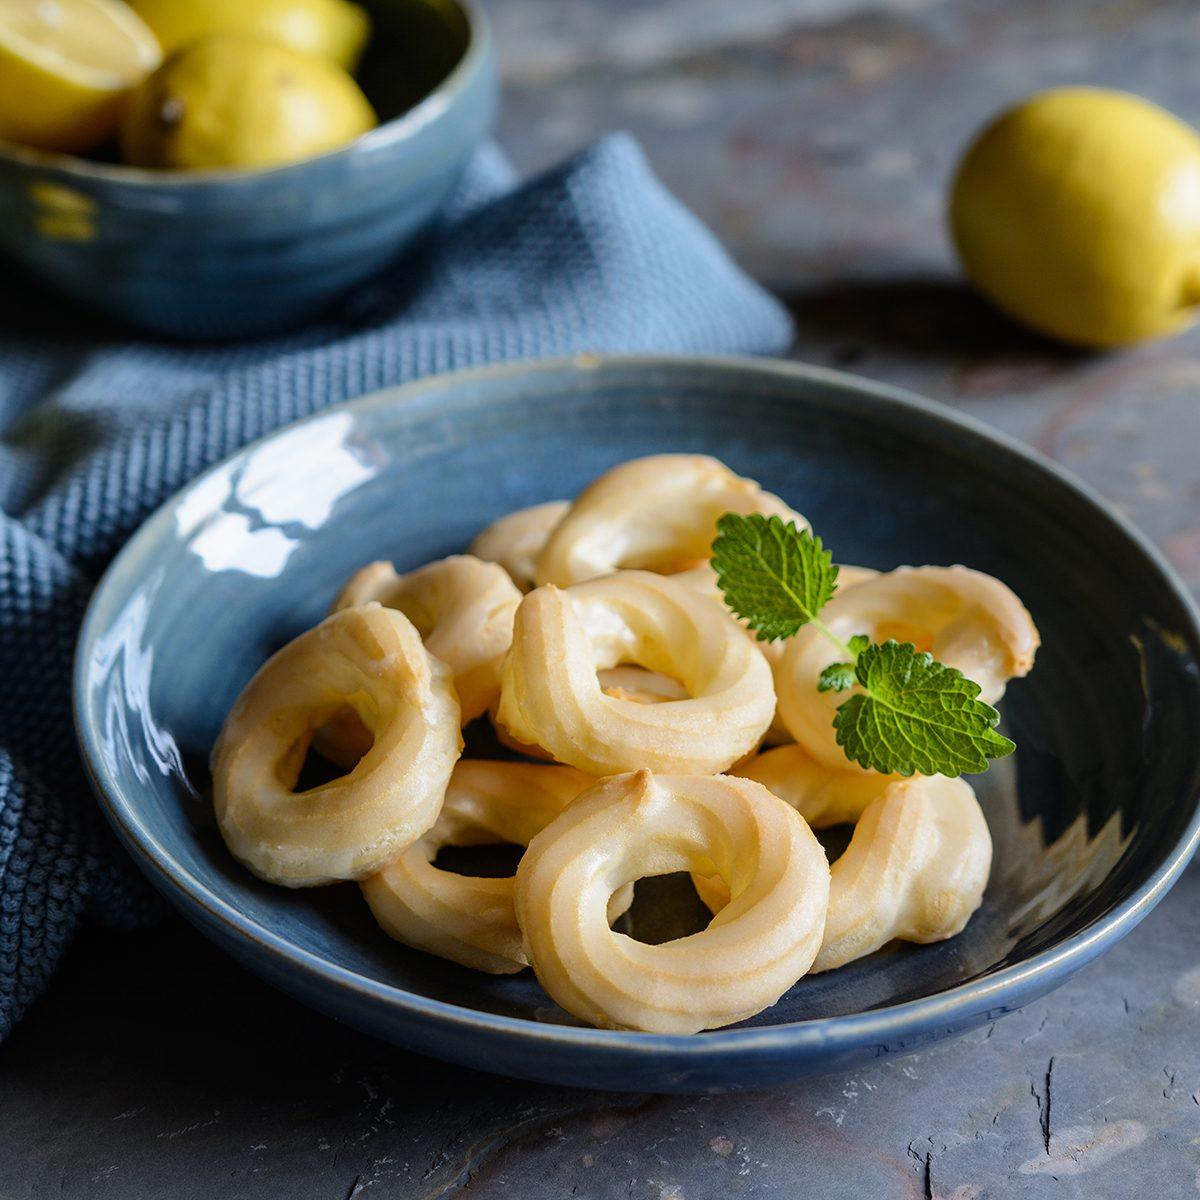 Traditional French Cruller Donuts with lemon glaze